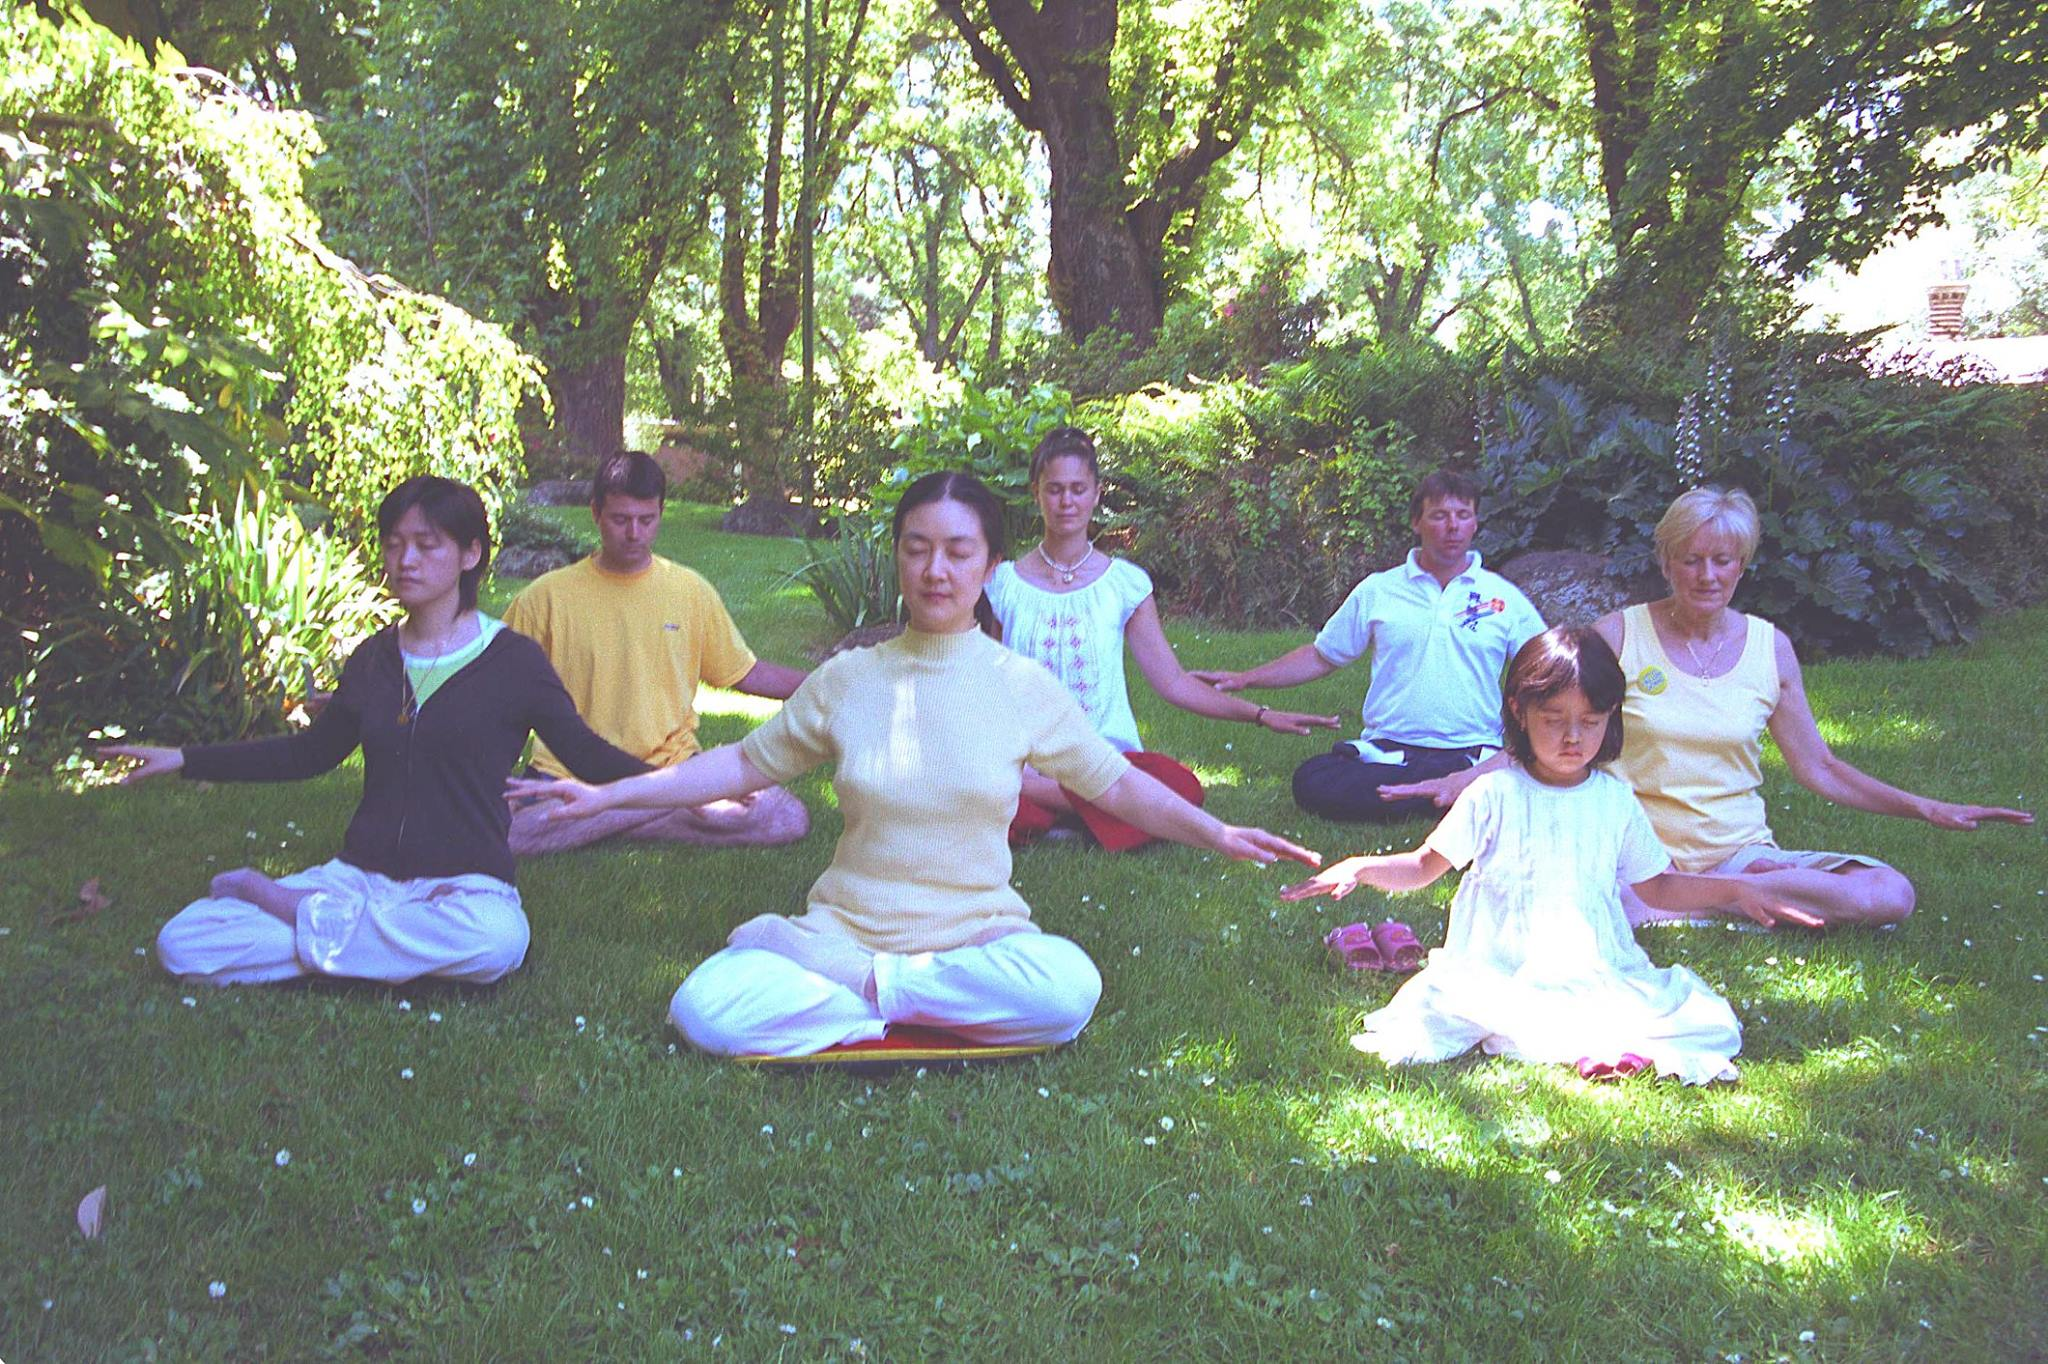 Jennifer doing Falun Gong meditation in a park in Melbourne, Australia, in 2003 with  Kate Vereshaka , Karen Zhang ,  Jan Becker (second row on the right), Greg Marsh, Michael Molner and a little disciple . Jan Becker is a 1964 Olympic Silver Medalist.